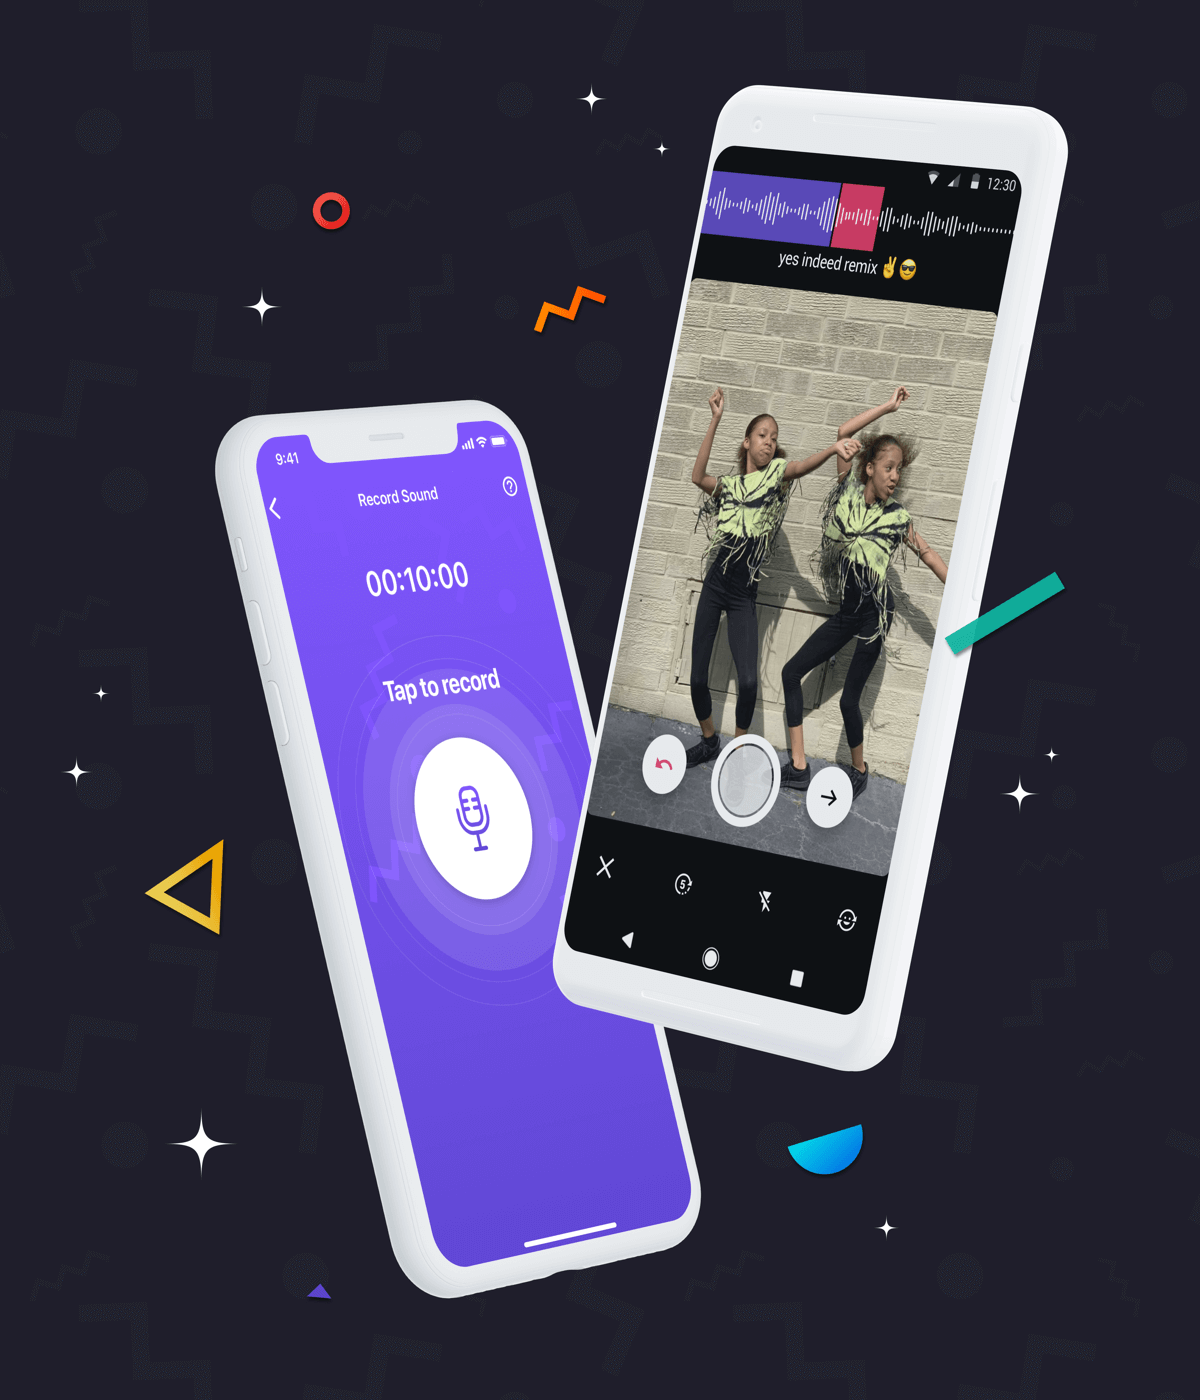 Dubsmash is a New York-based video sharing social media service application for iOS and Android.